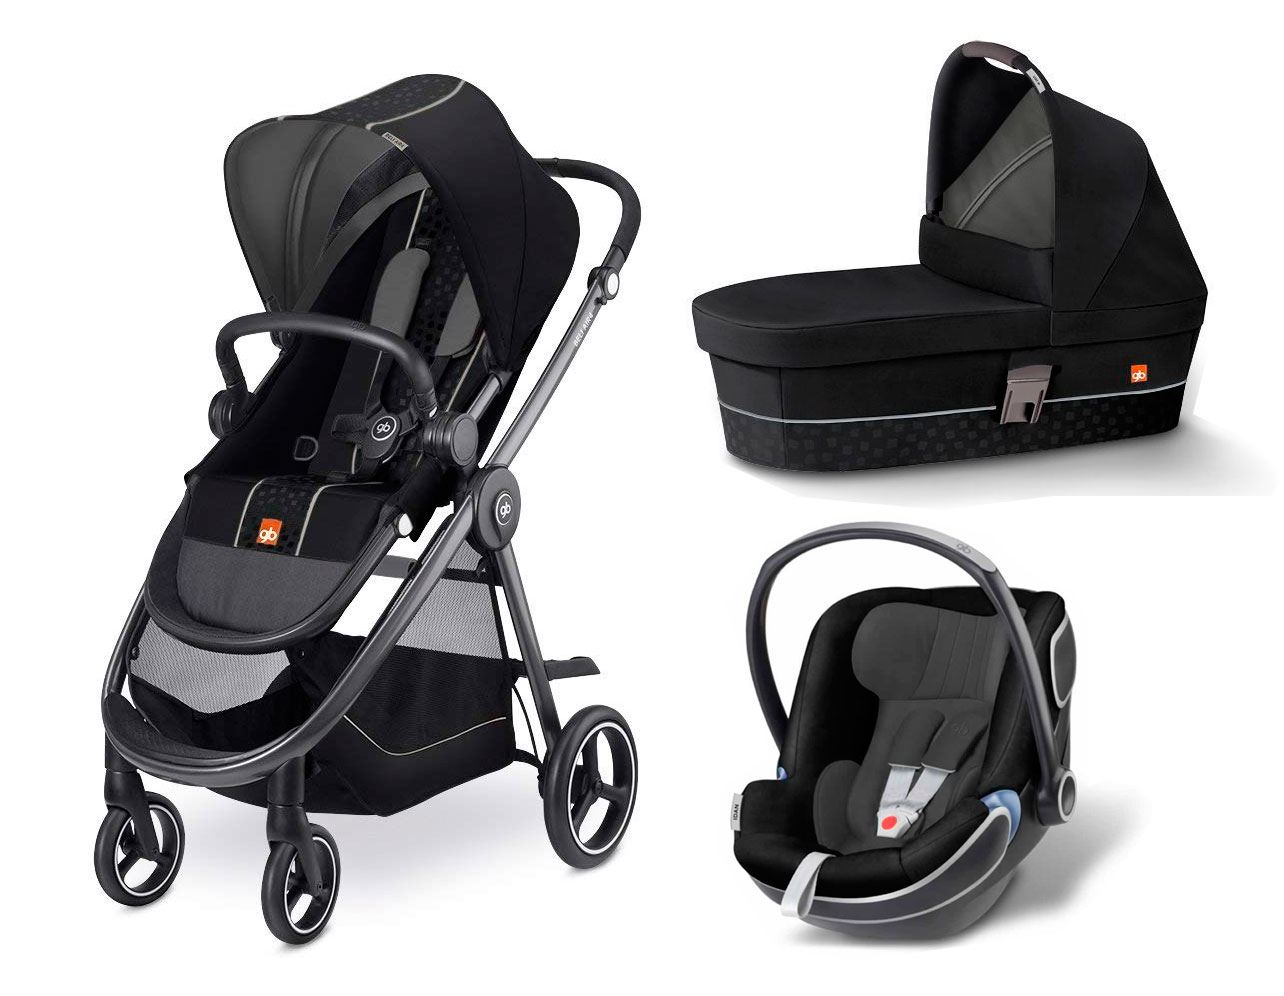 coche de bebe Beli Air 4 de GB monument black